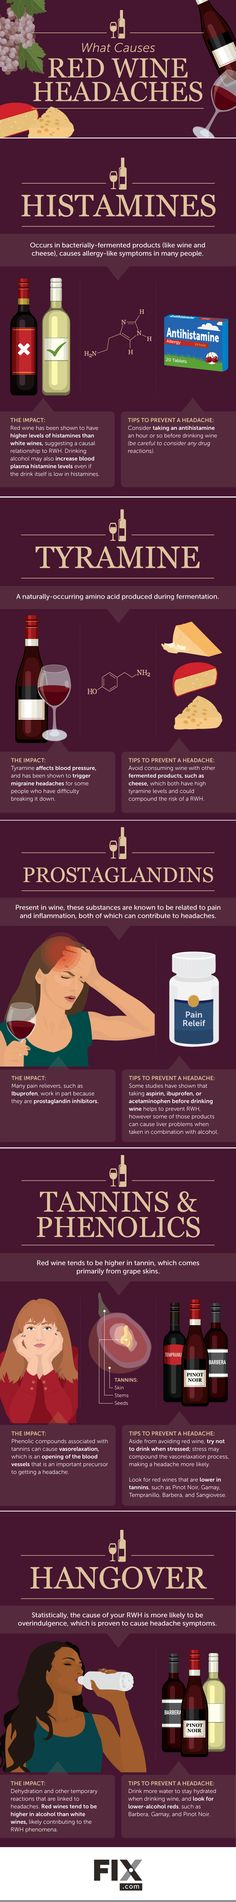 Find out how to lessen the chance of getting a red wine headache by sticking to certain types of wine, and not over-indulging of course!